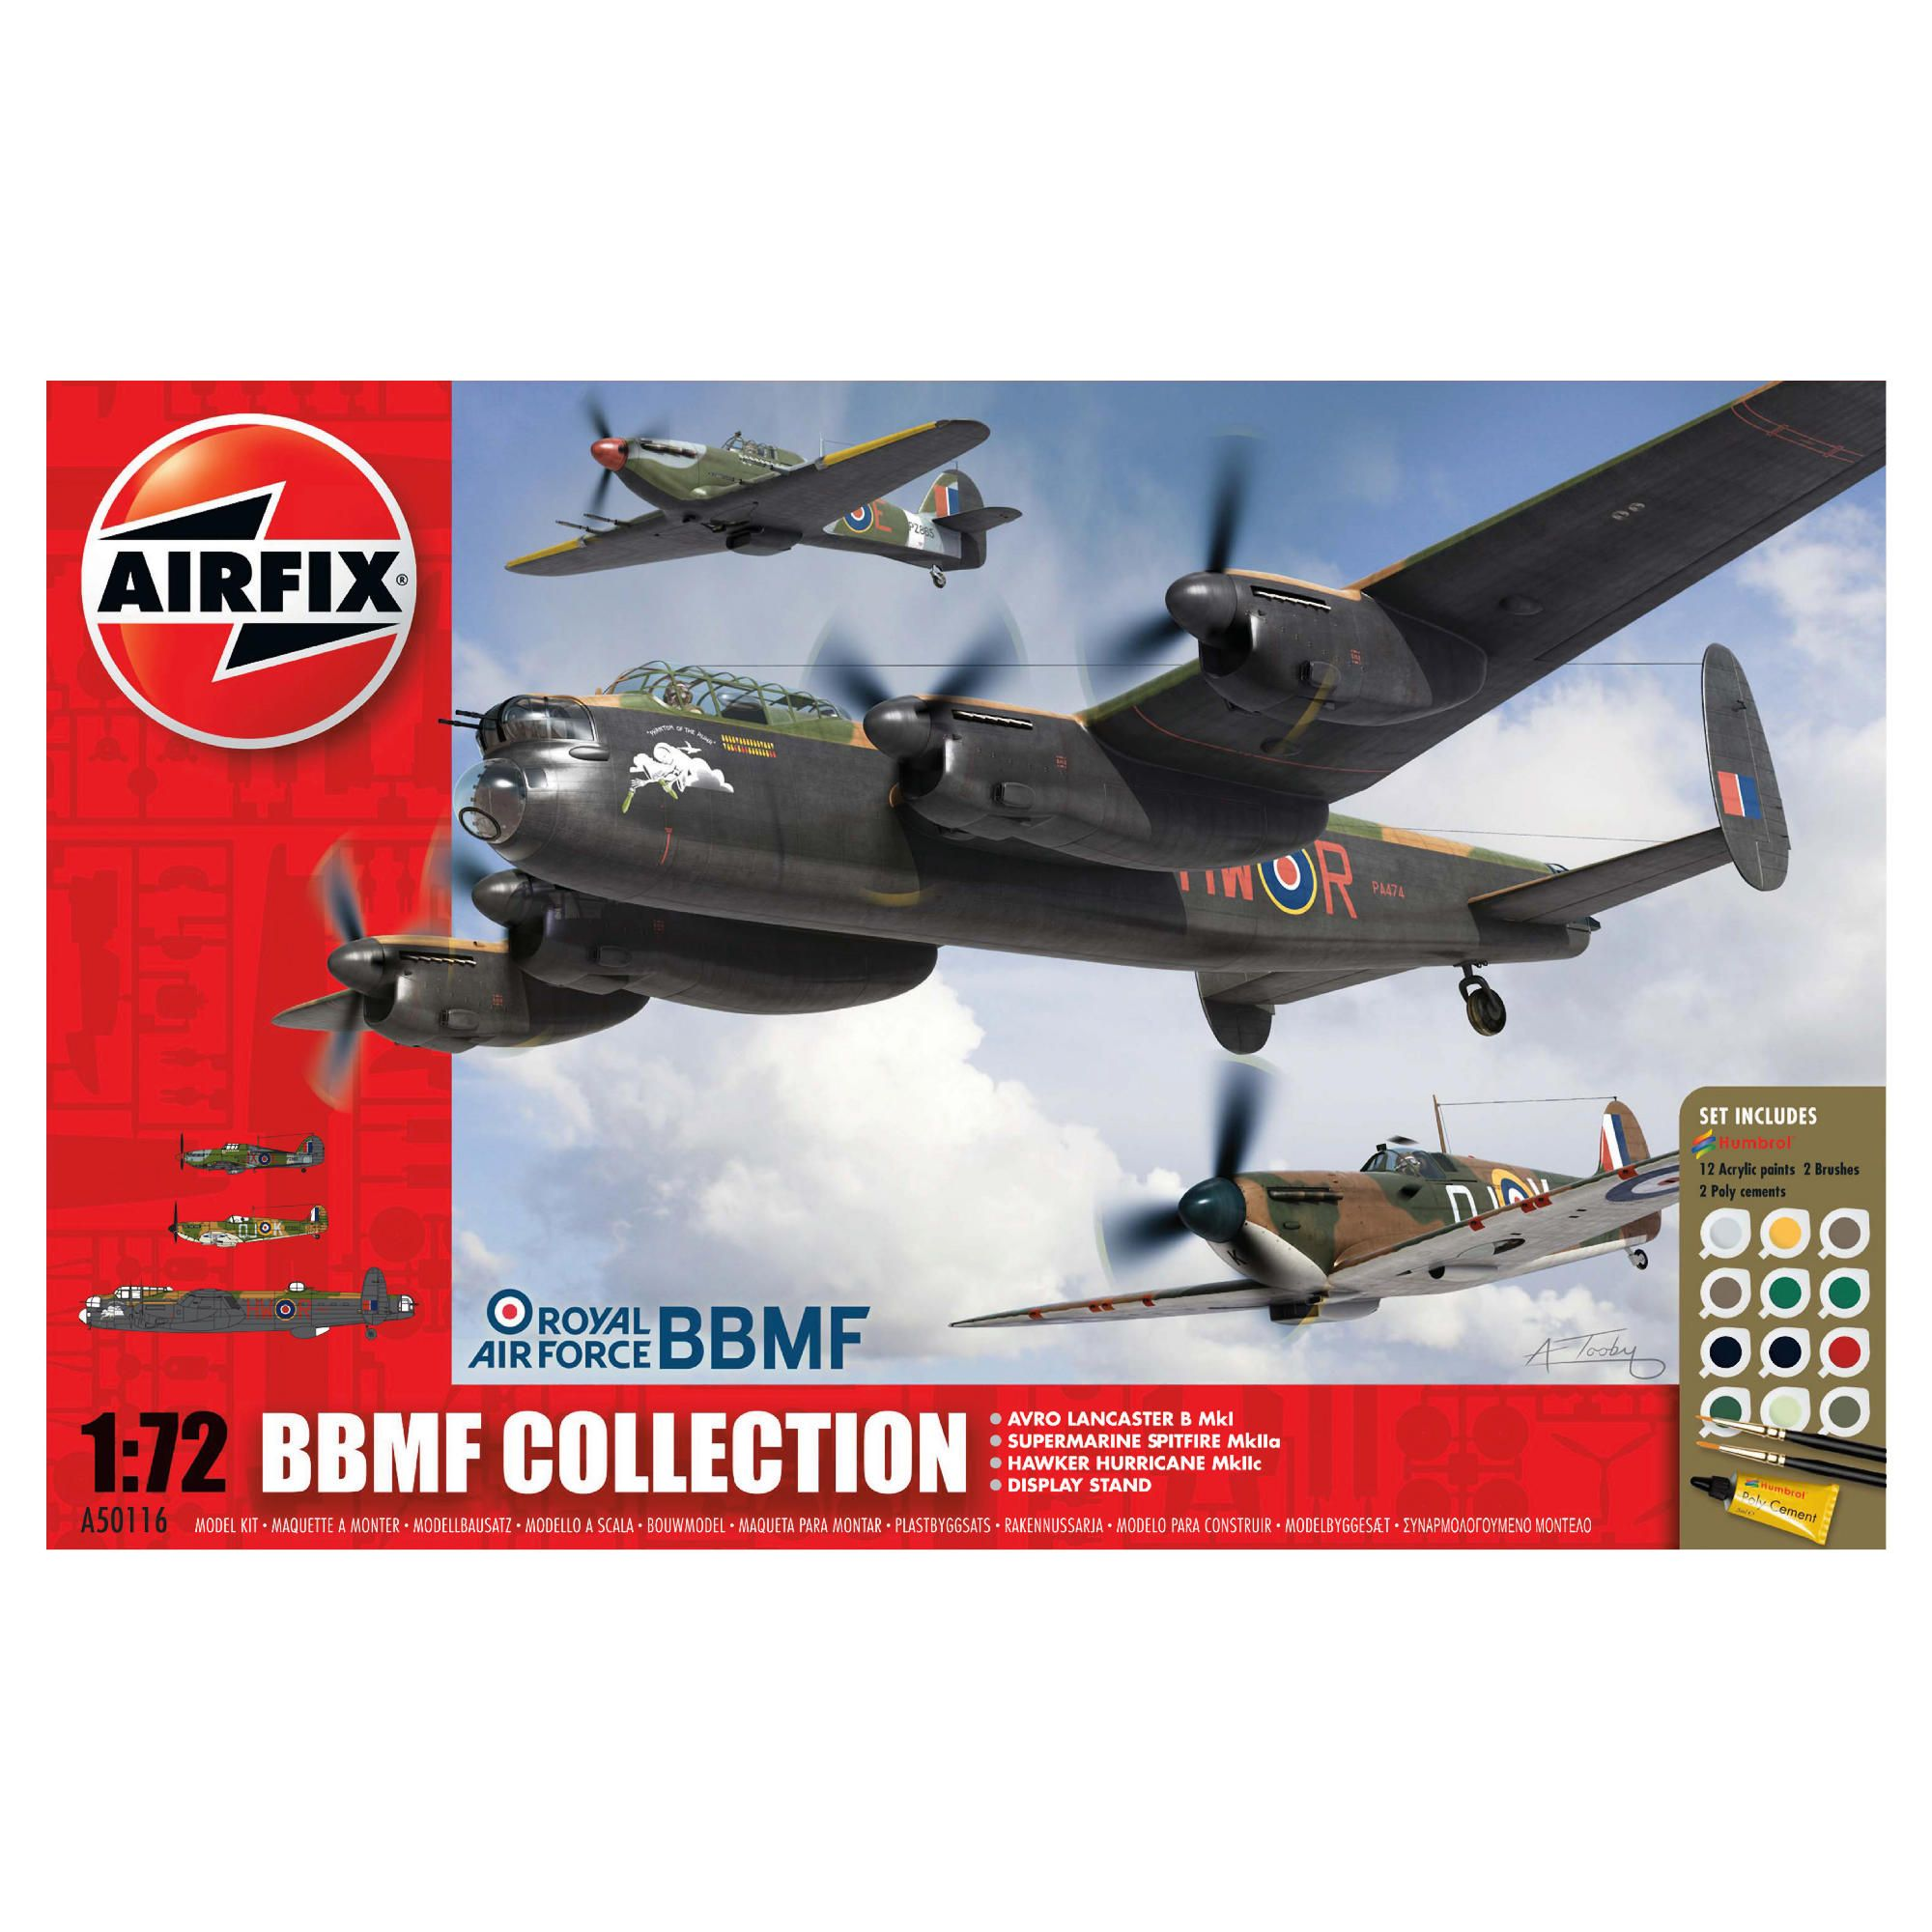 airfix-battle-britain-memorial-flight-collection-gift-set